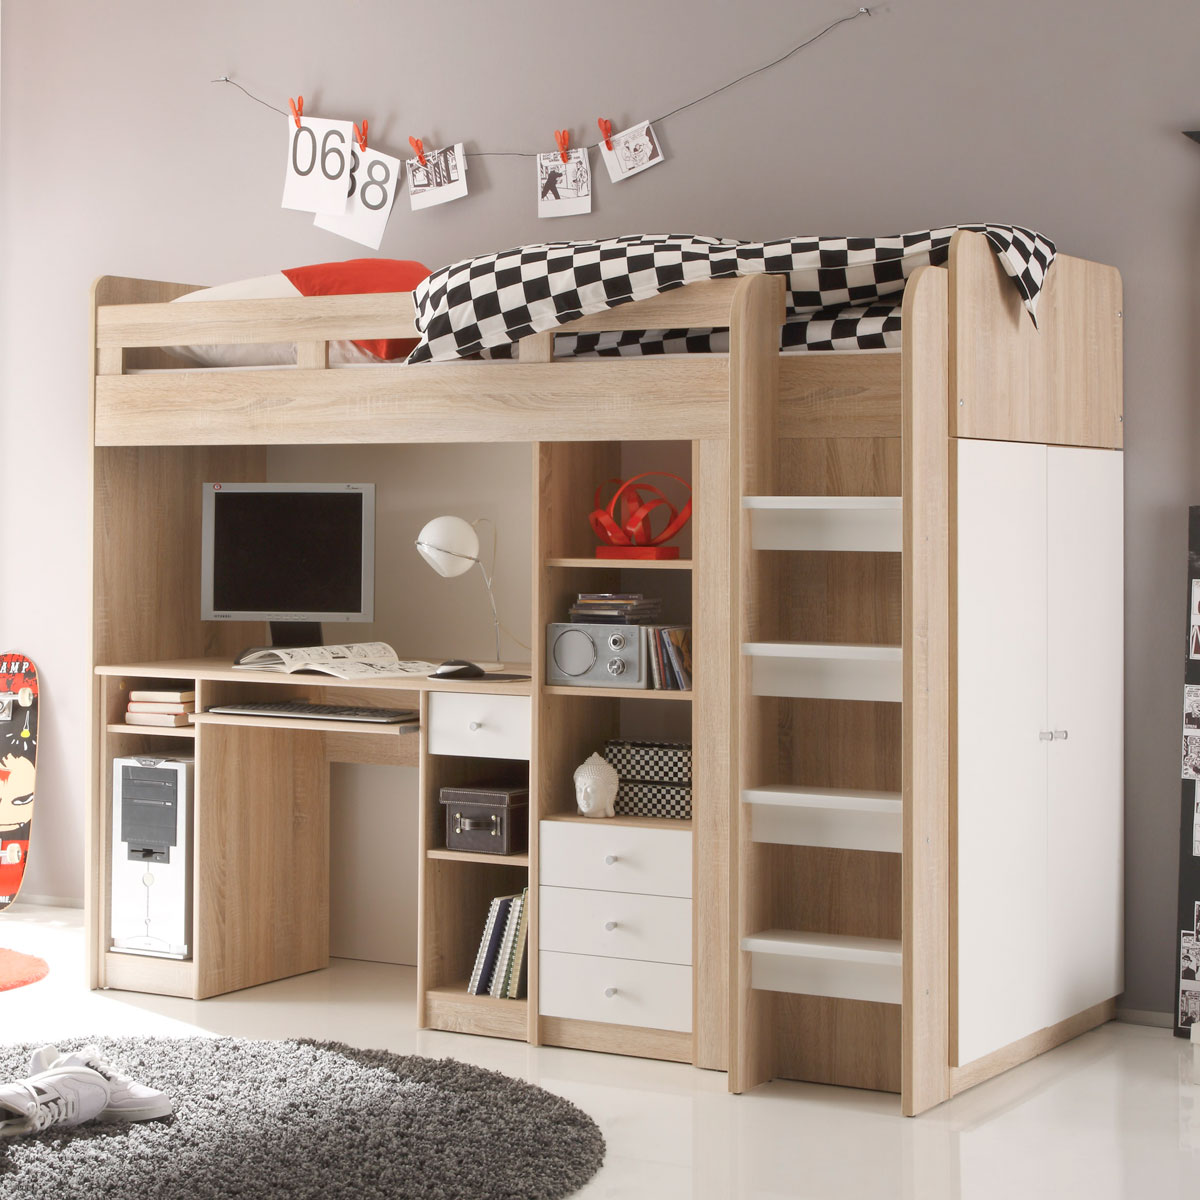 hochbett unit etagenbett kinderbett bett sonoma eiche s gerau und wei 90x200 cm ebay. Black Bedroom Furniture Sets. Home Design Ideas